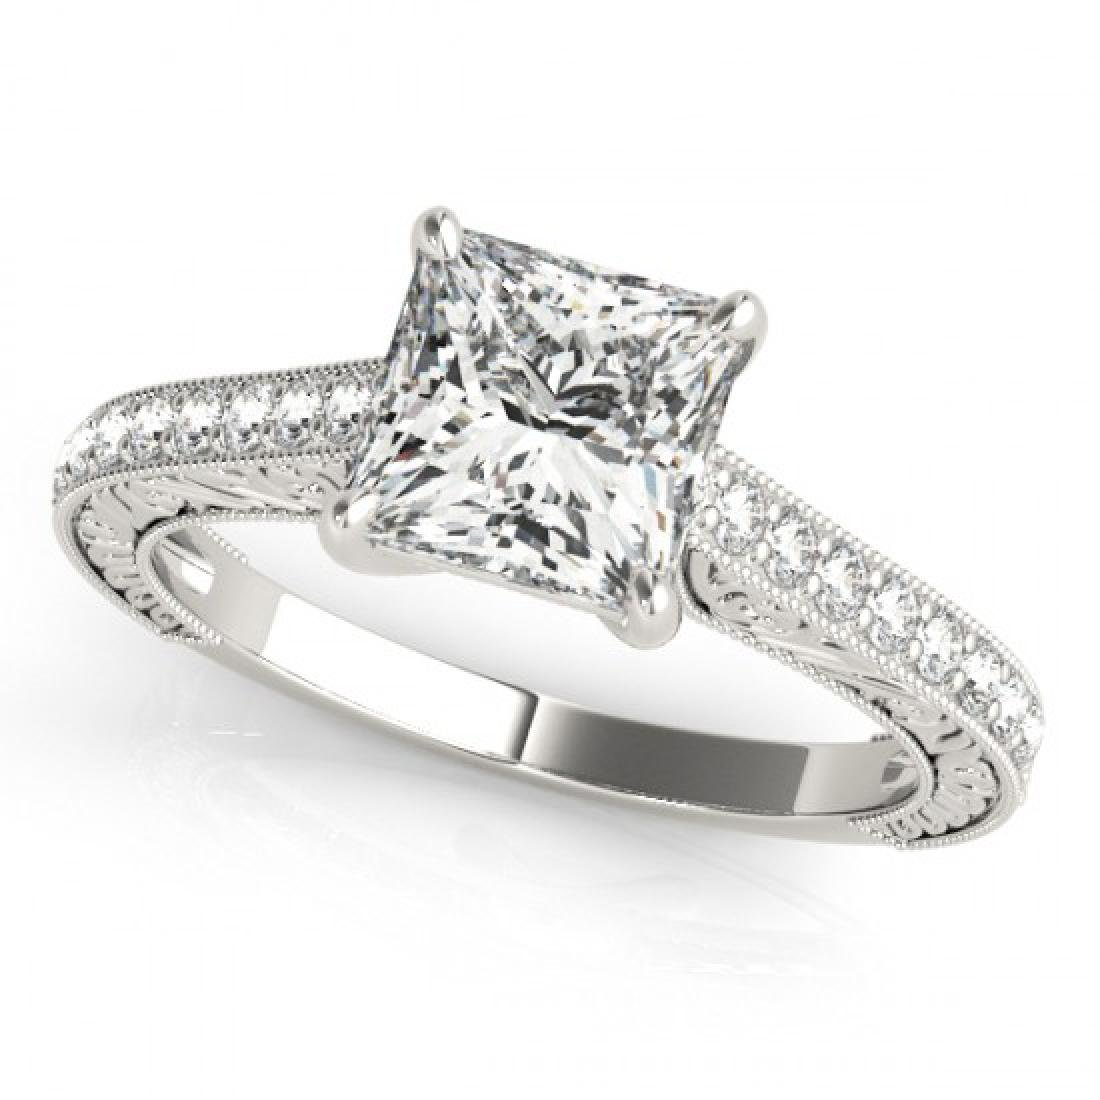 0.8 CTW Certified VS/SI Princess Diamond Solitaire Ring